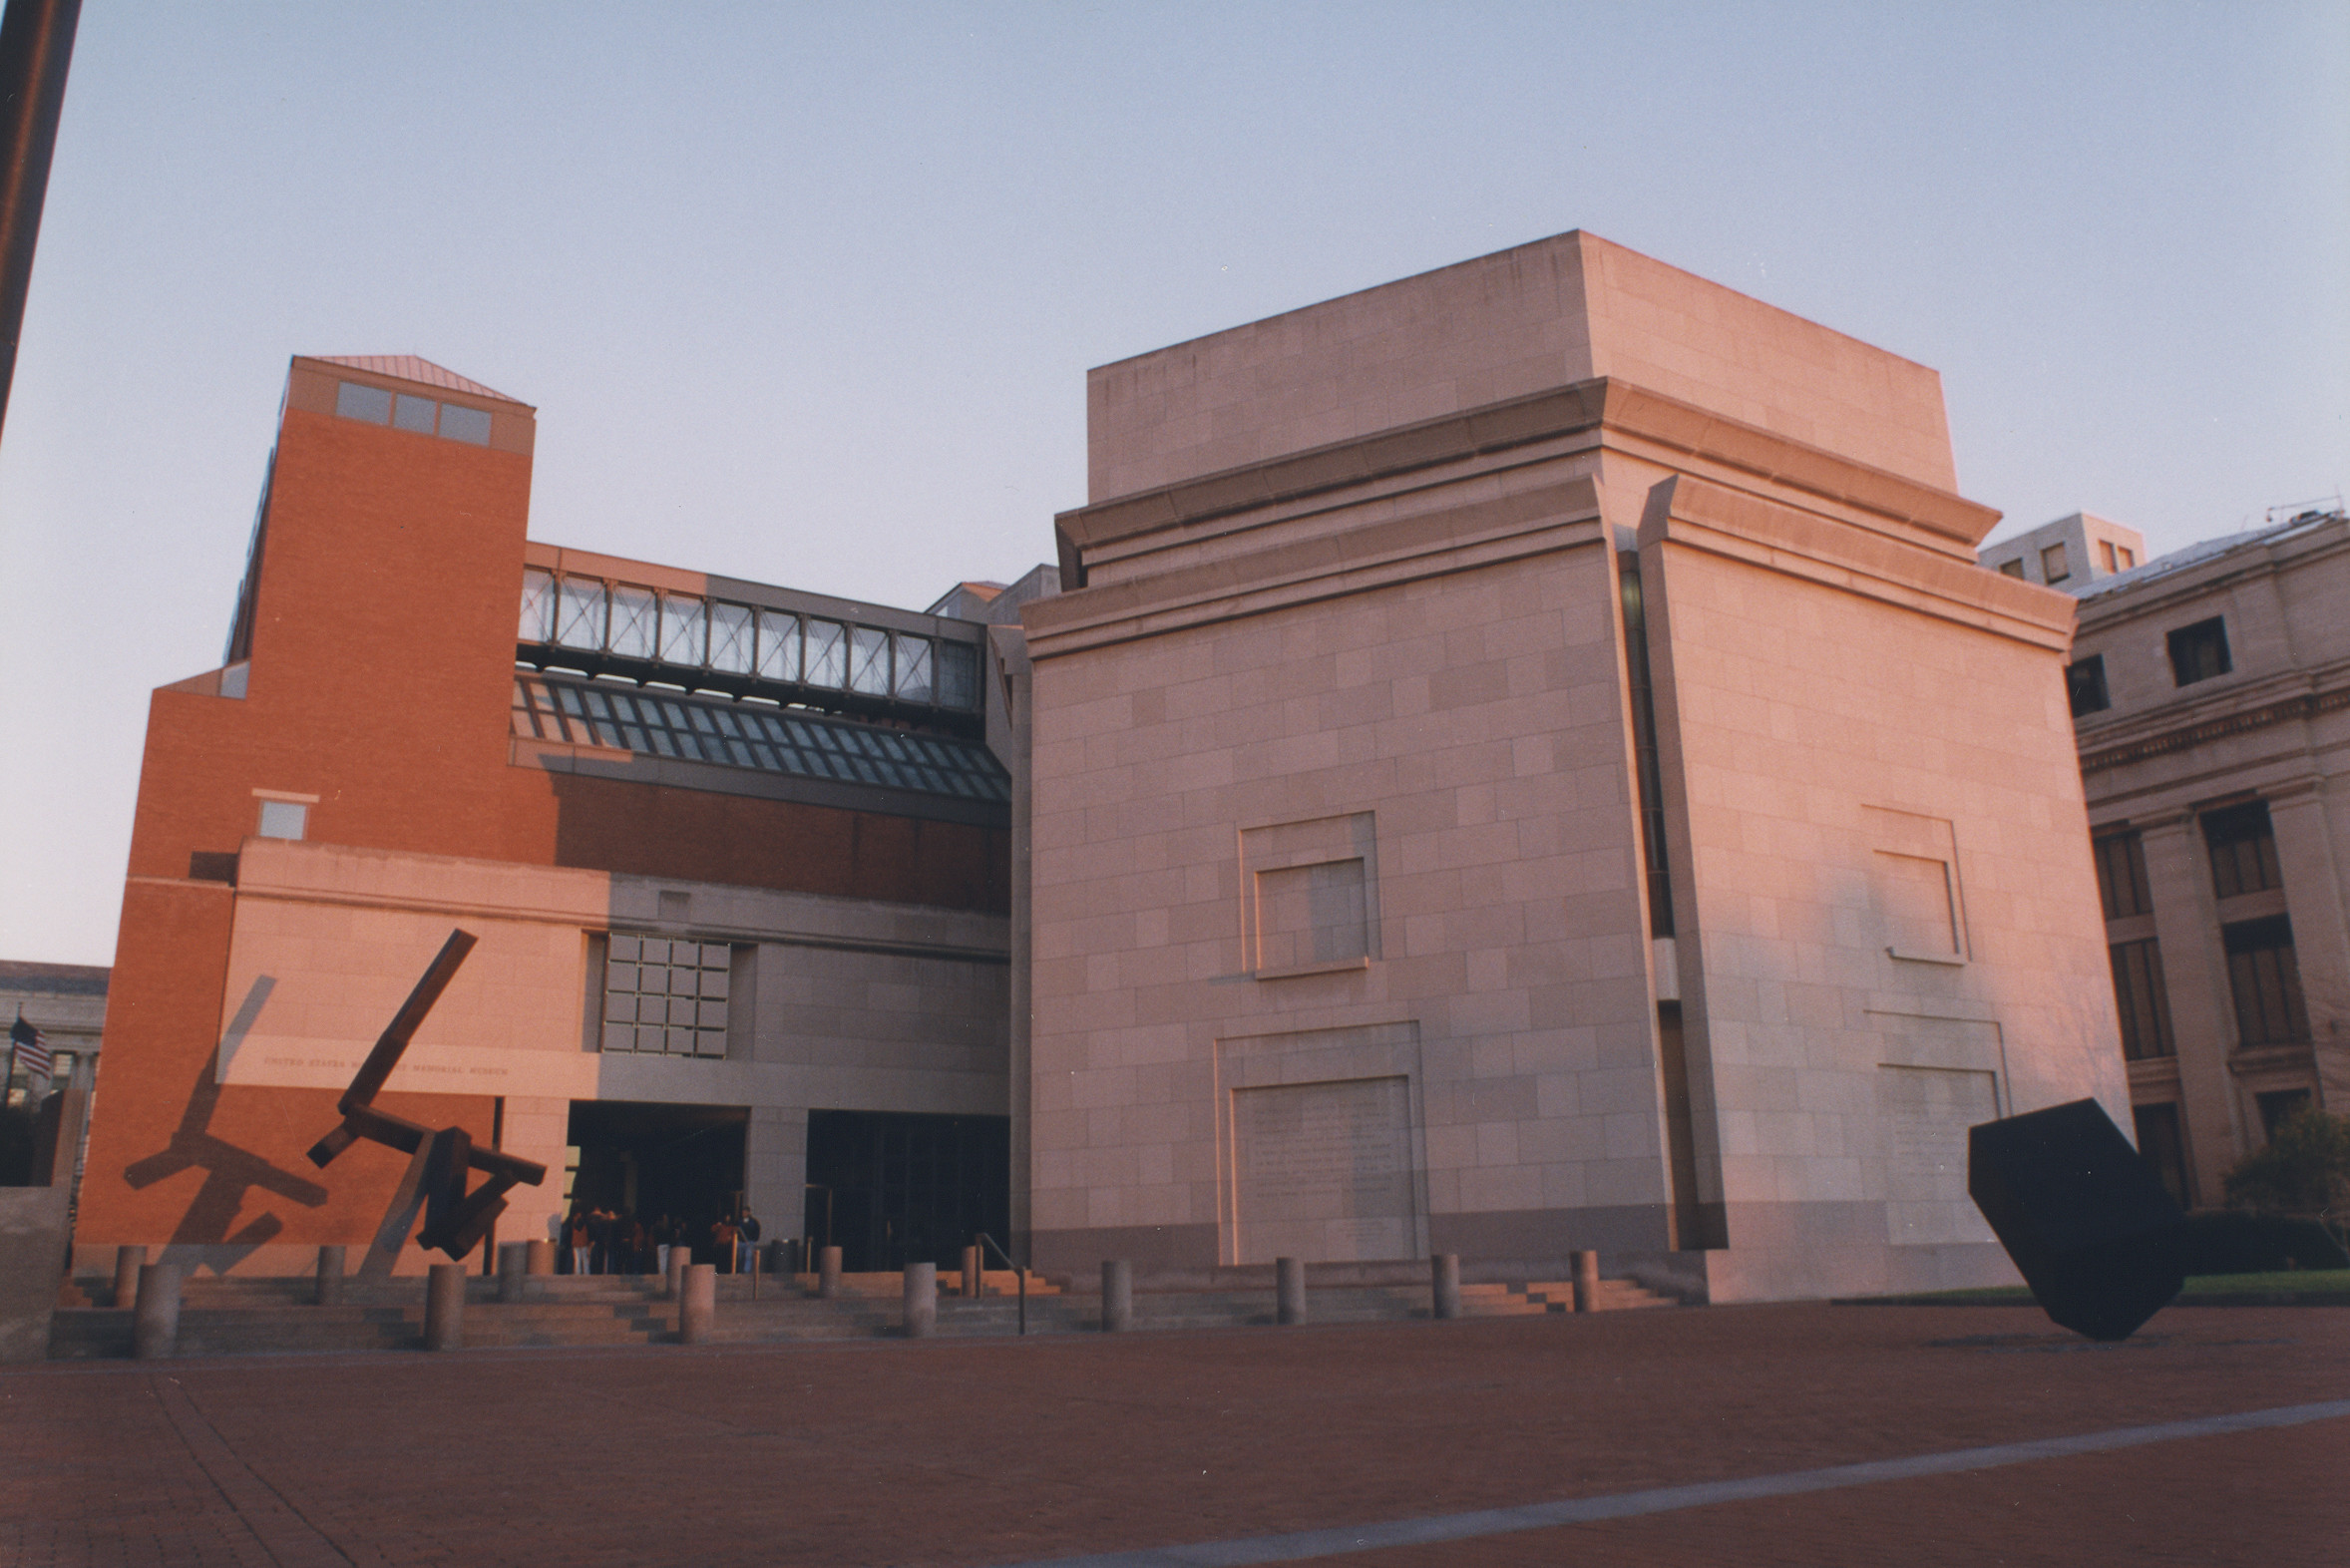 View of the 15th Street entrance to the U.S. Holocaust Memorial Museum.